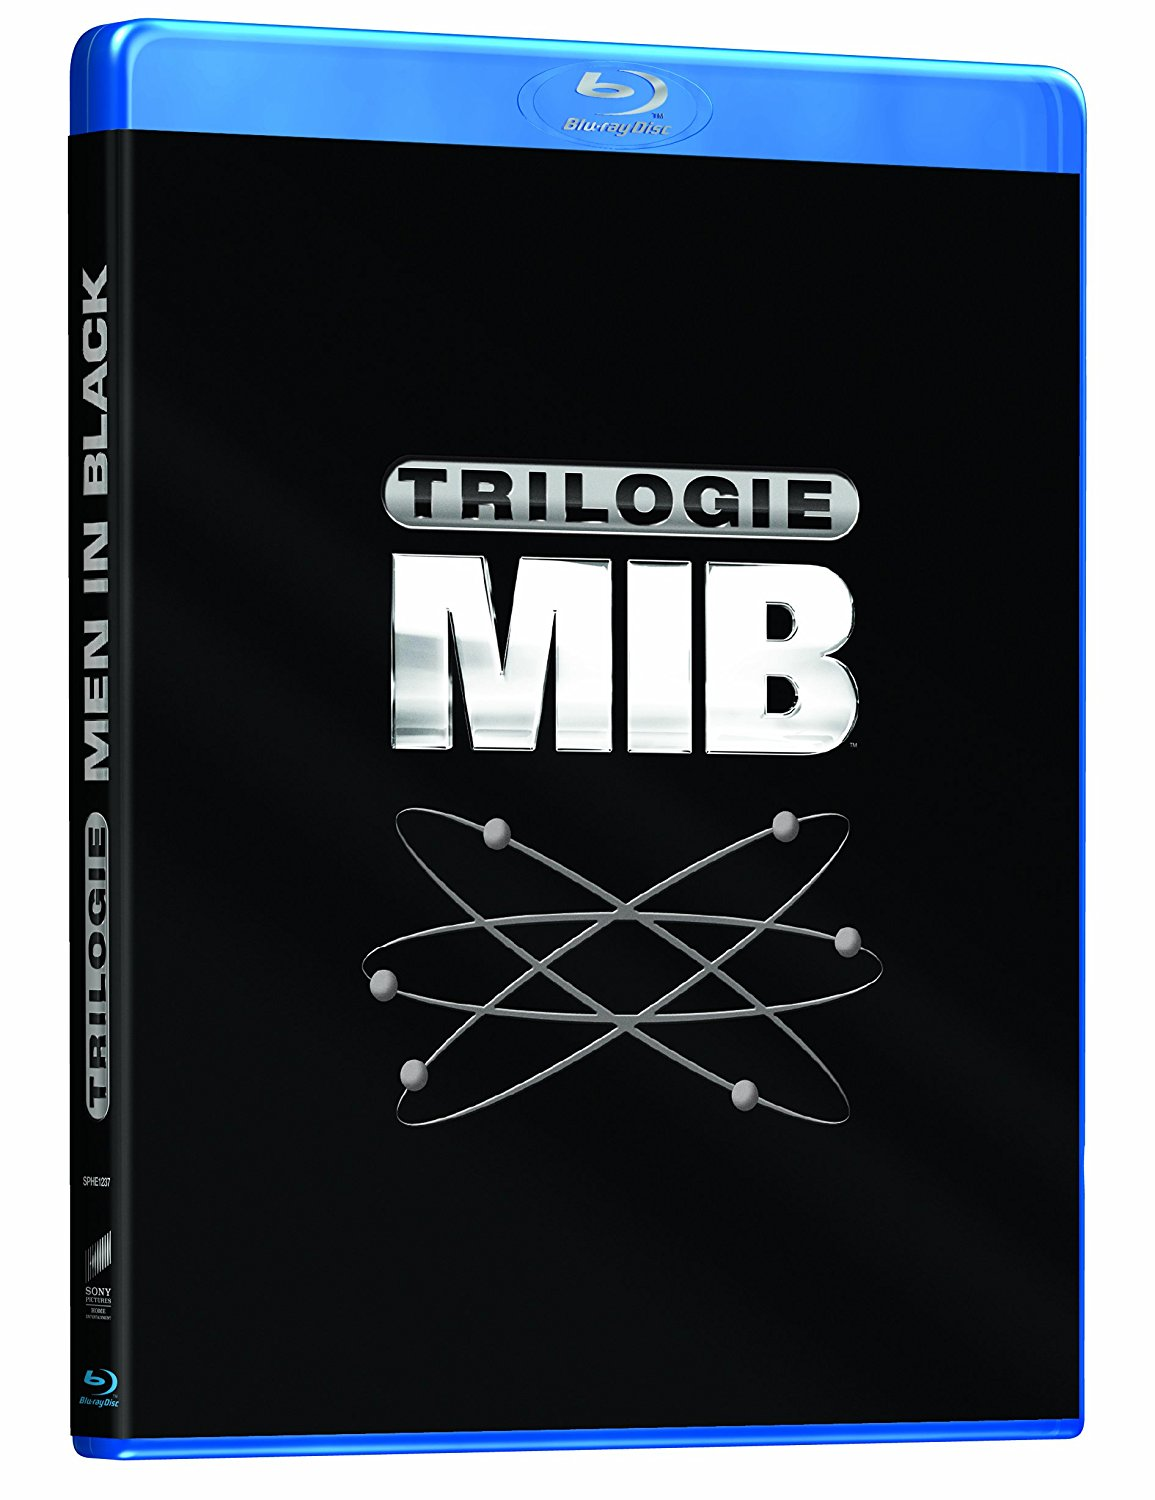 Blu-ray Men in Black - Trilogie, Blu-ray pas cher Amazon